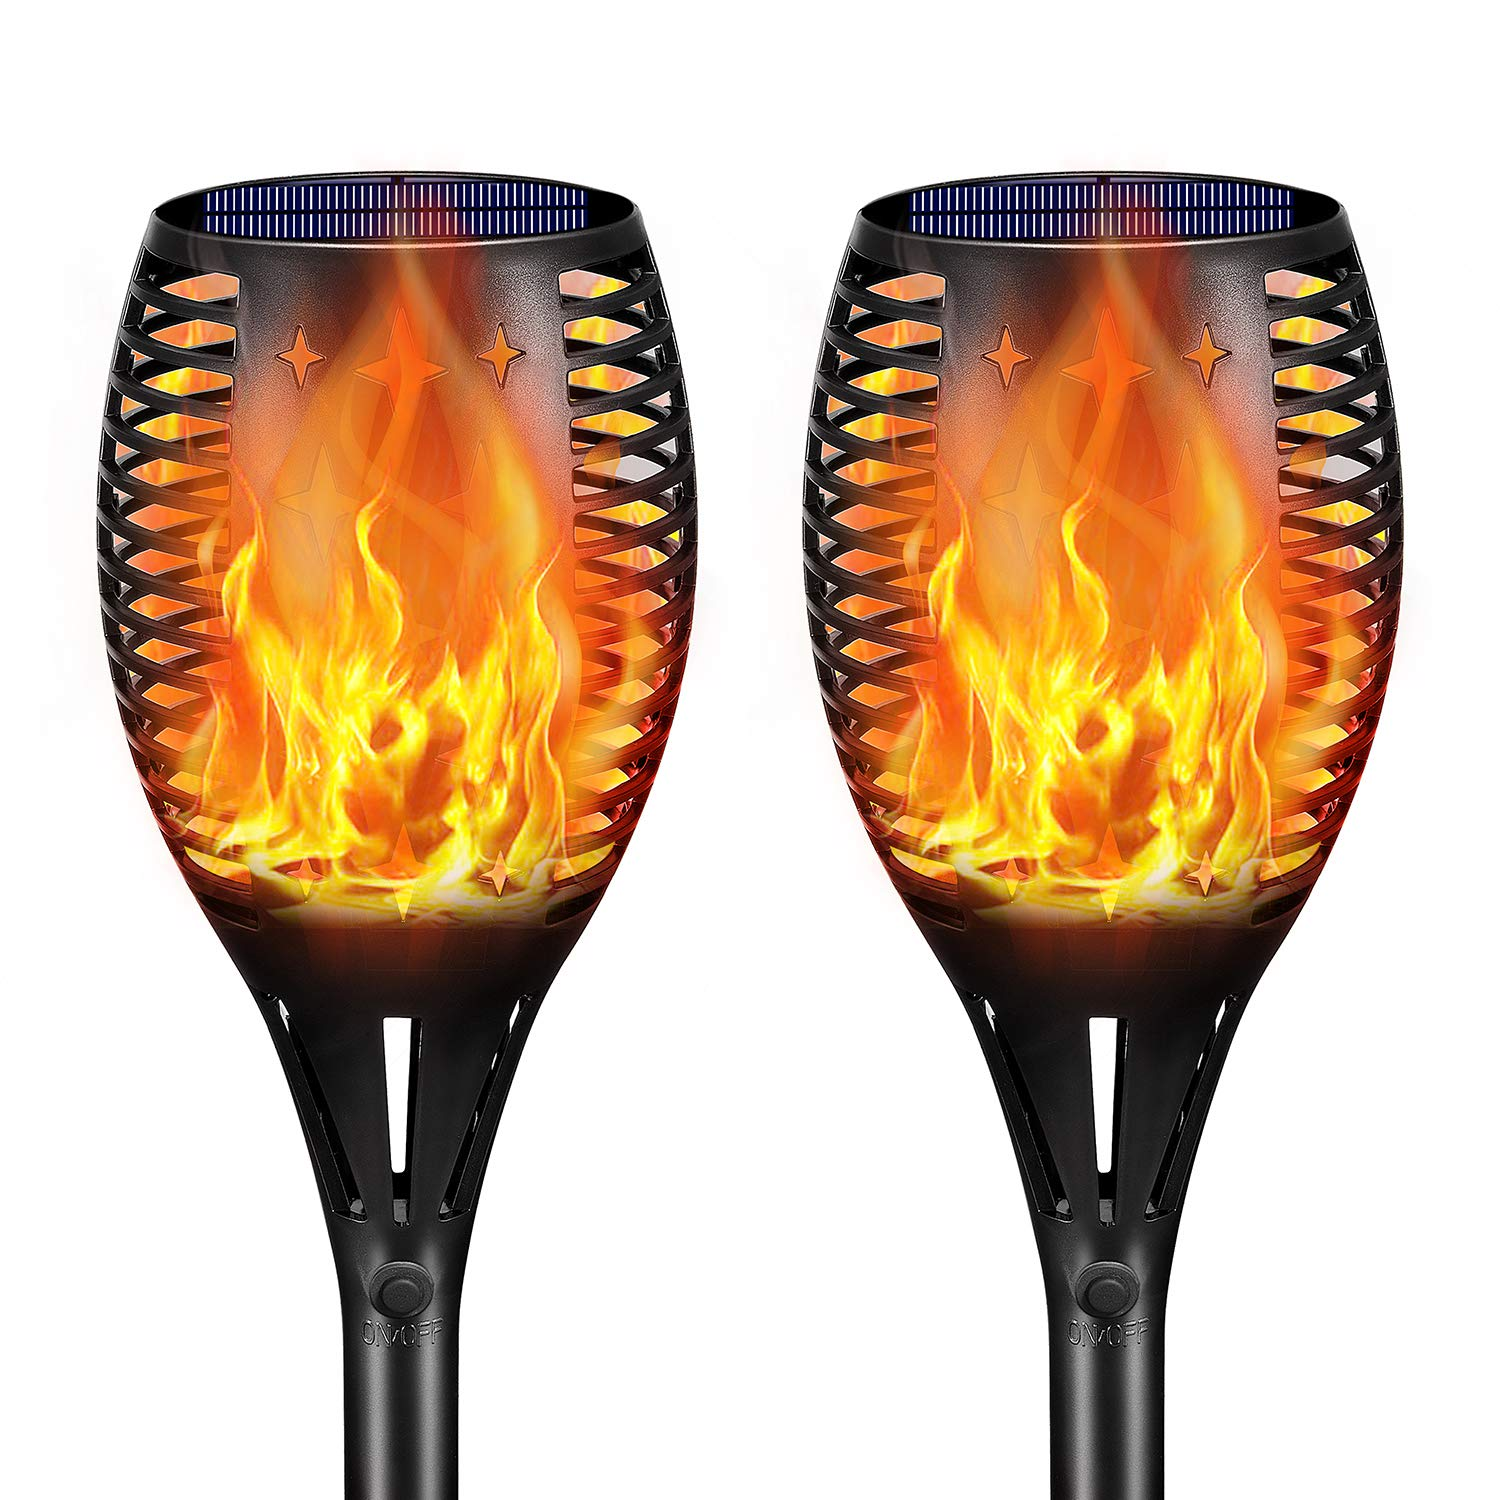 Landscape Solar Torch Lights,YULAMP Waterproof Flickering Flames Torches Lights Outdoor Solar Flame Light Decoration Lighting Dusk to Dawn Auto On/Off Security Torch Light for Deck Yard Driveway 2Pack by YULAMP